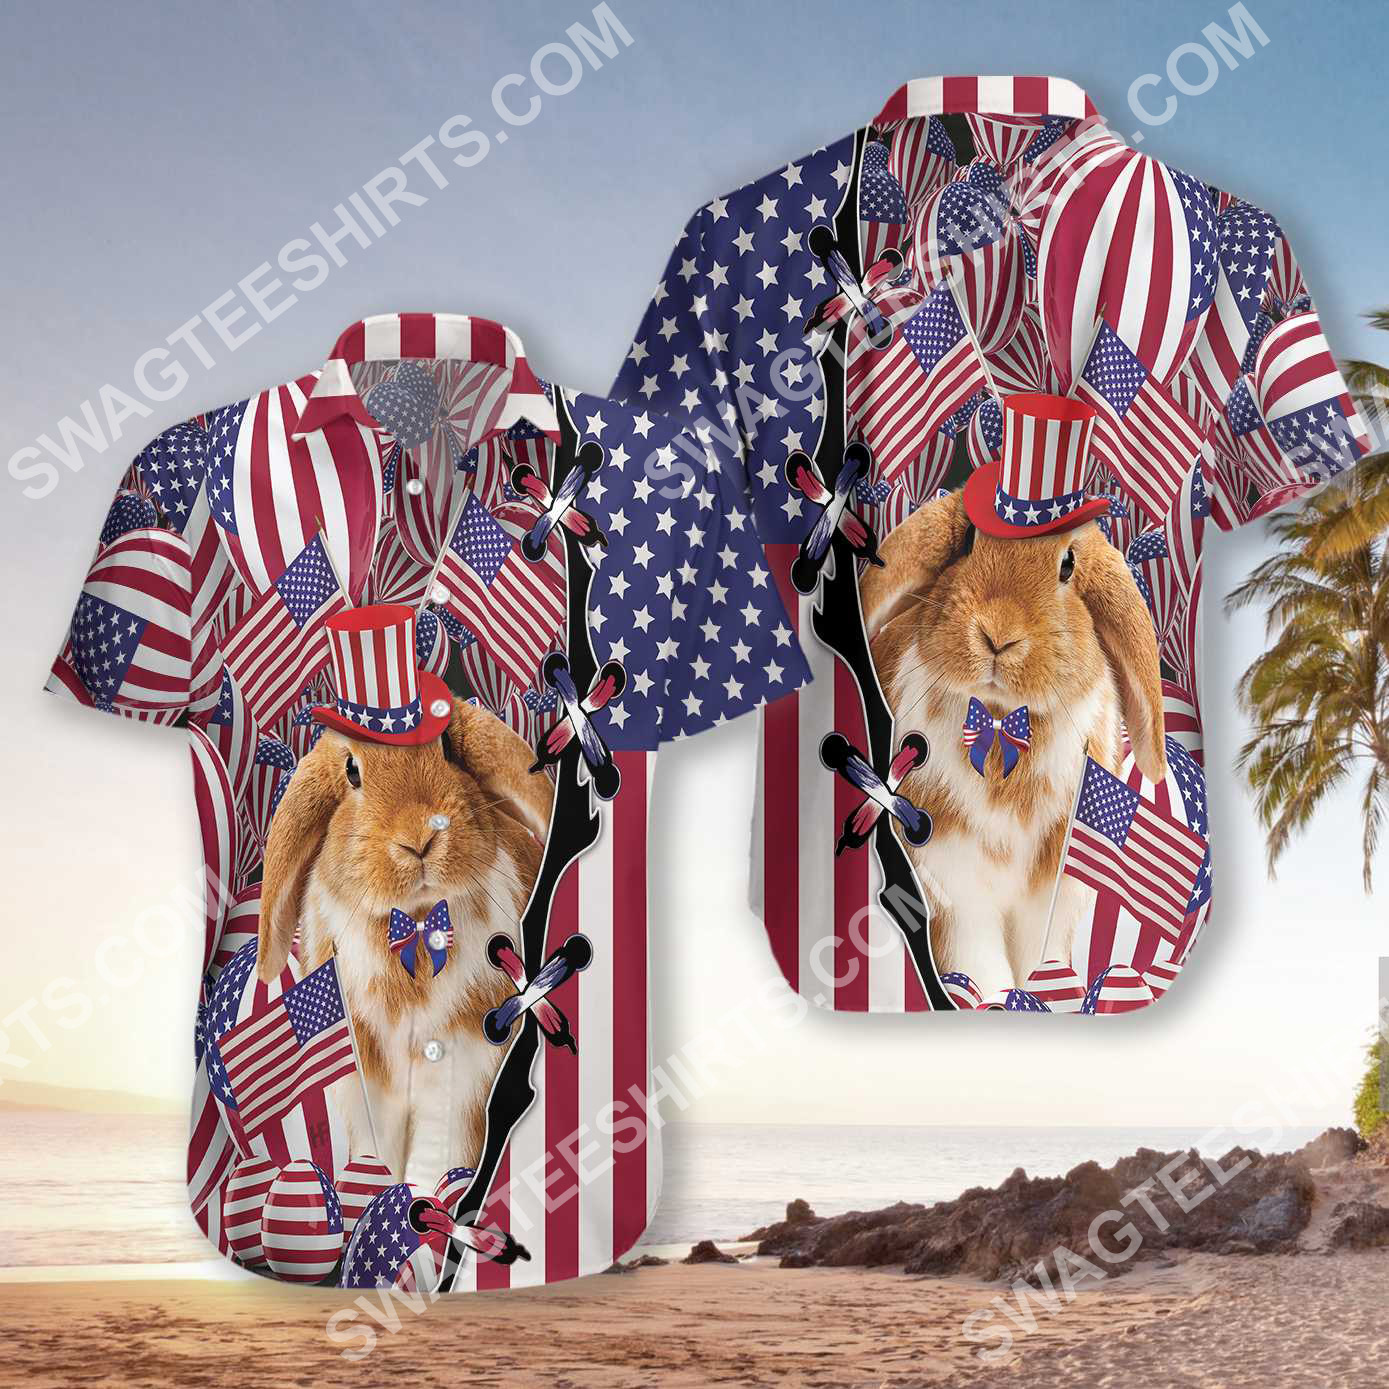 happy easter day america flag all over printed hawaiian shirt 3(1) - Copy